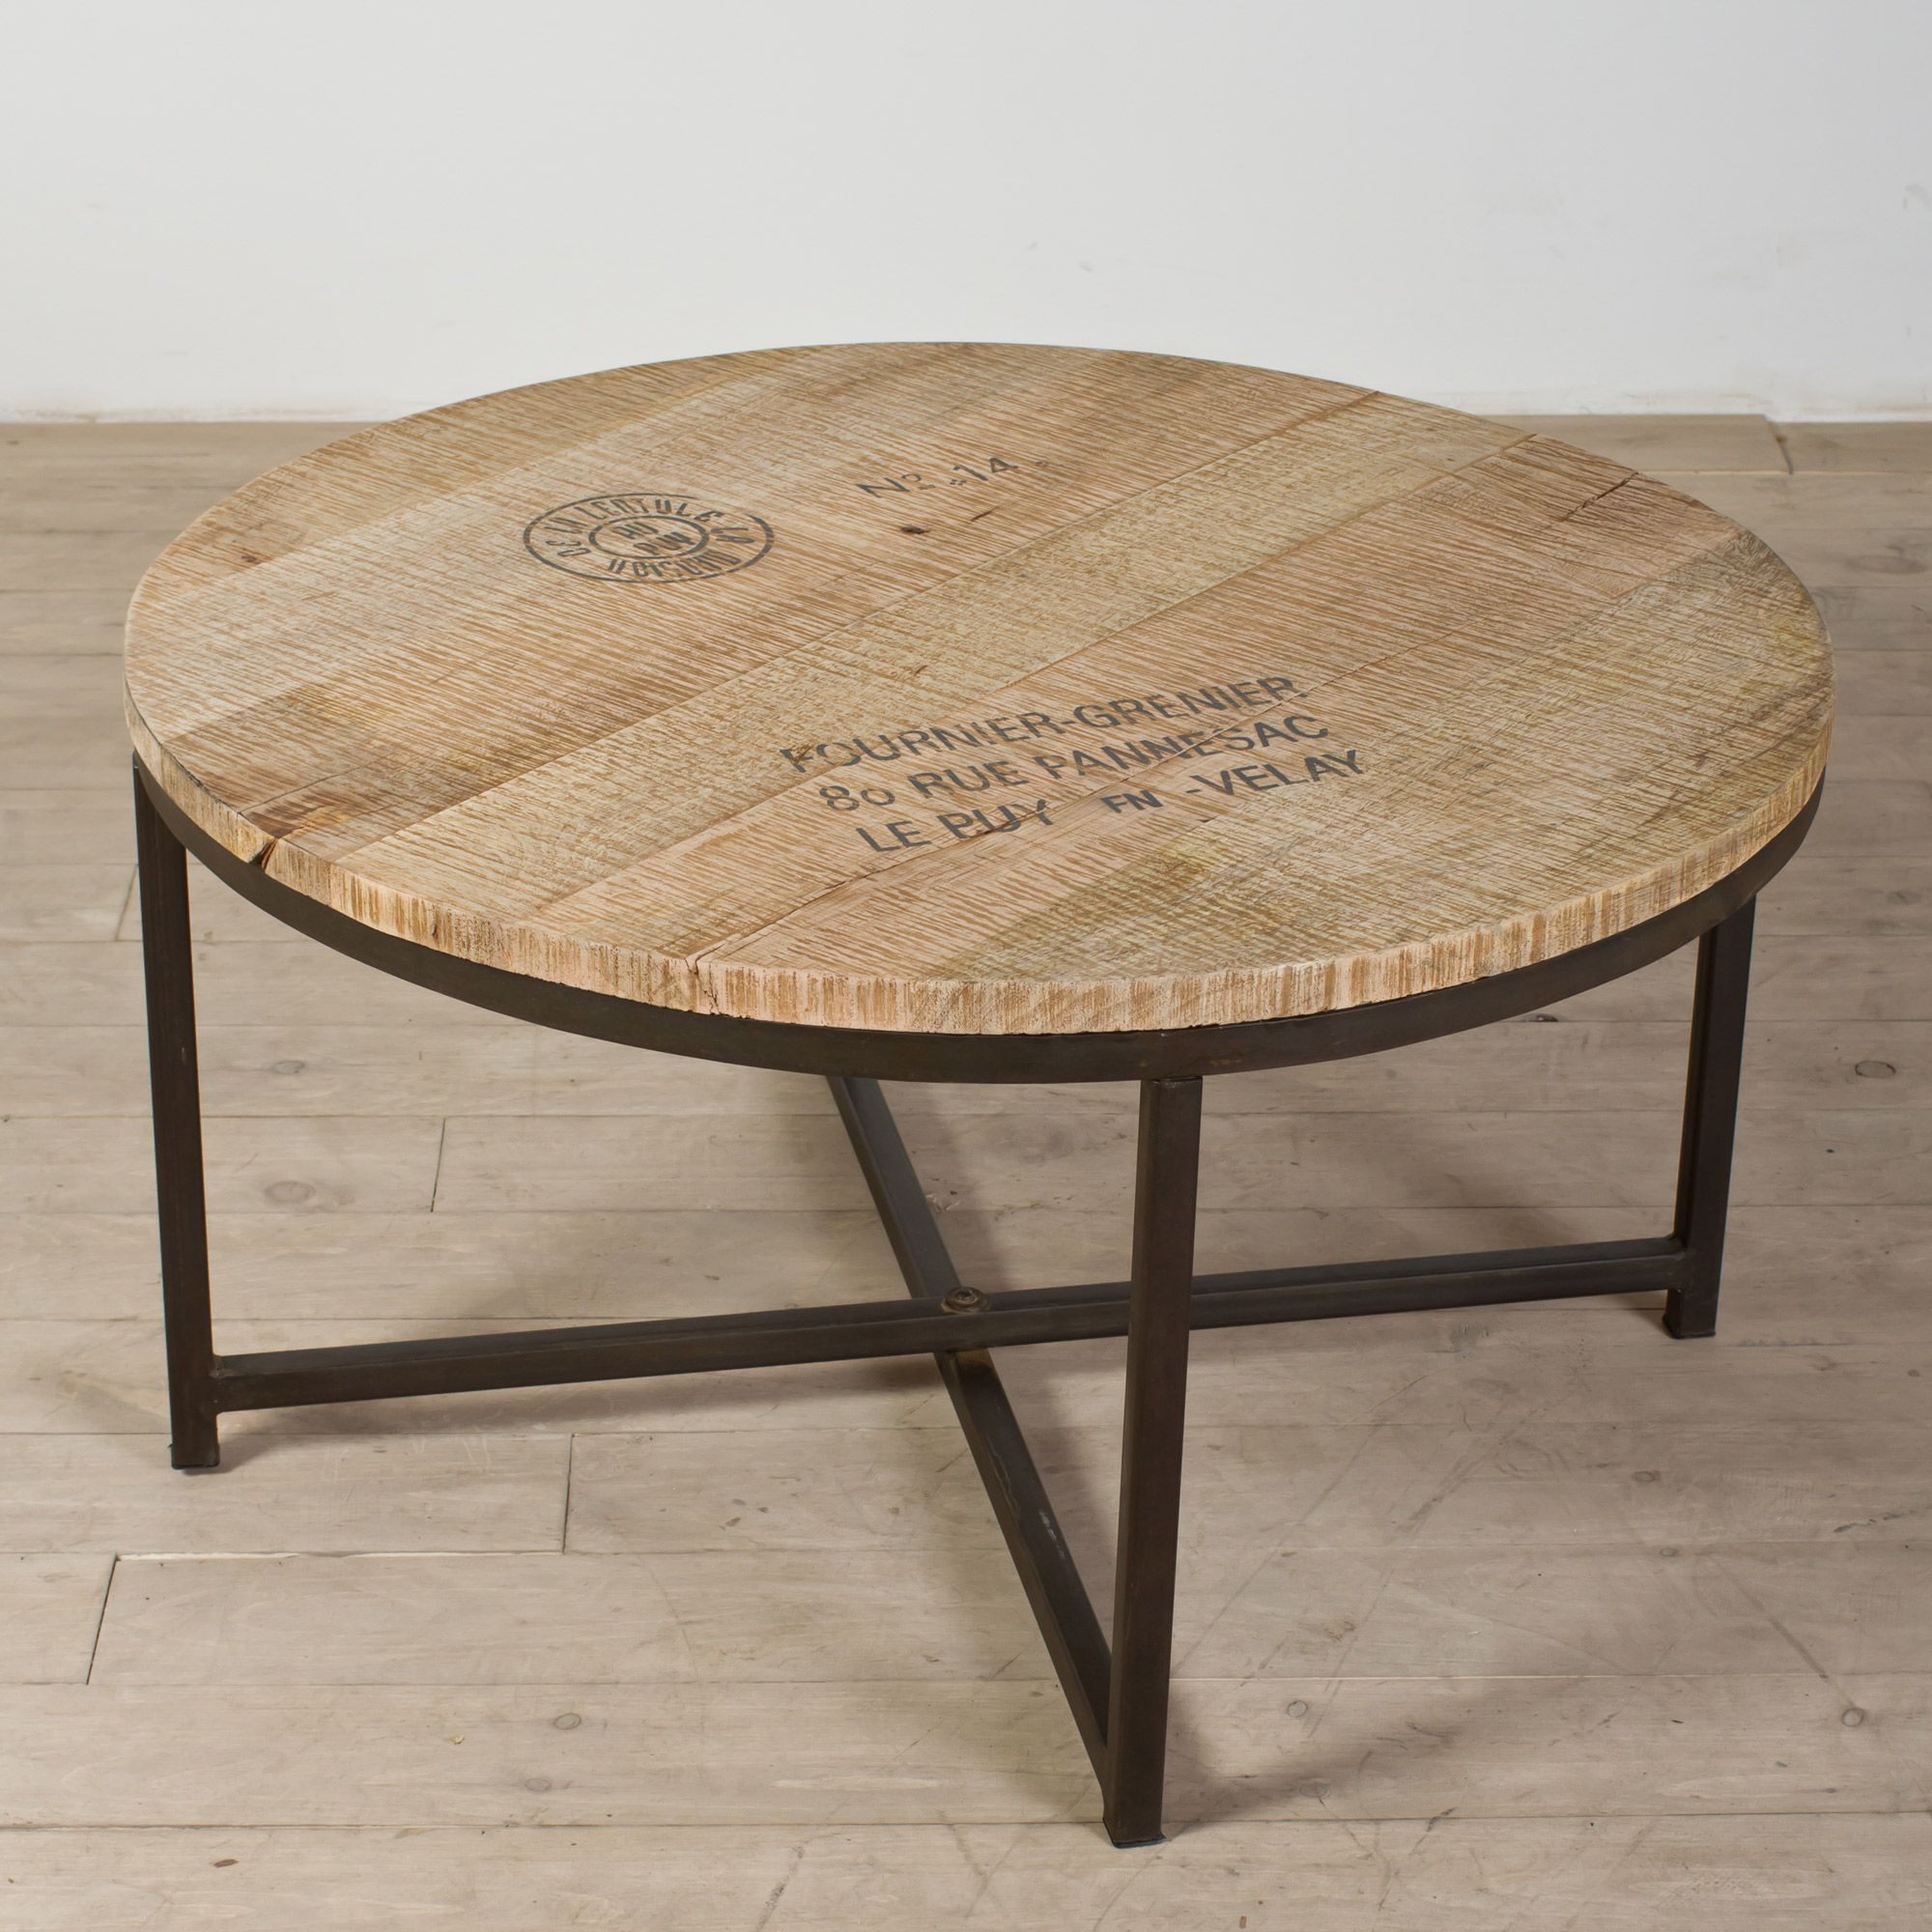 Homemade French Stamped Mango Round Coffee Table (India)